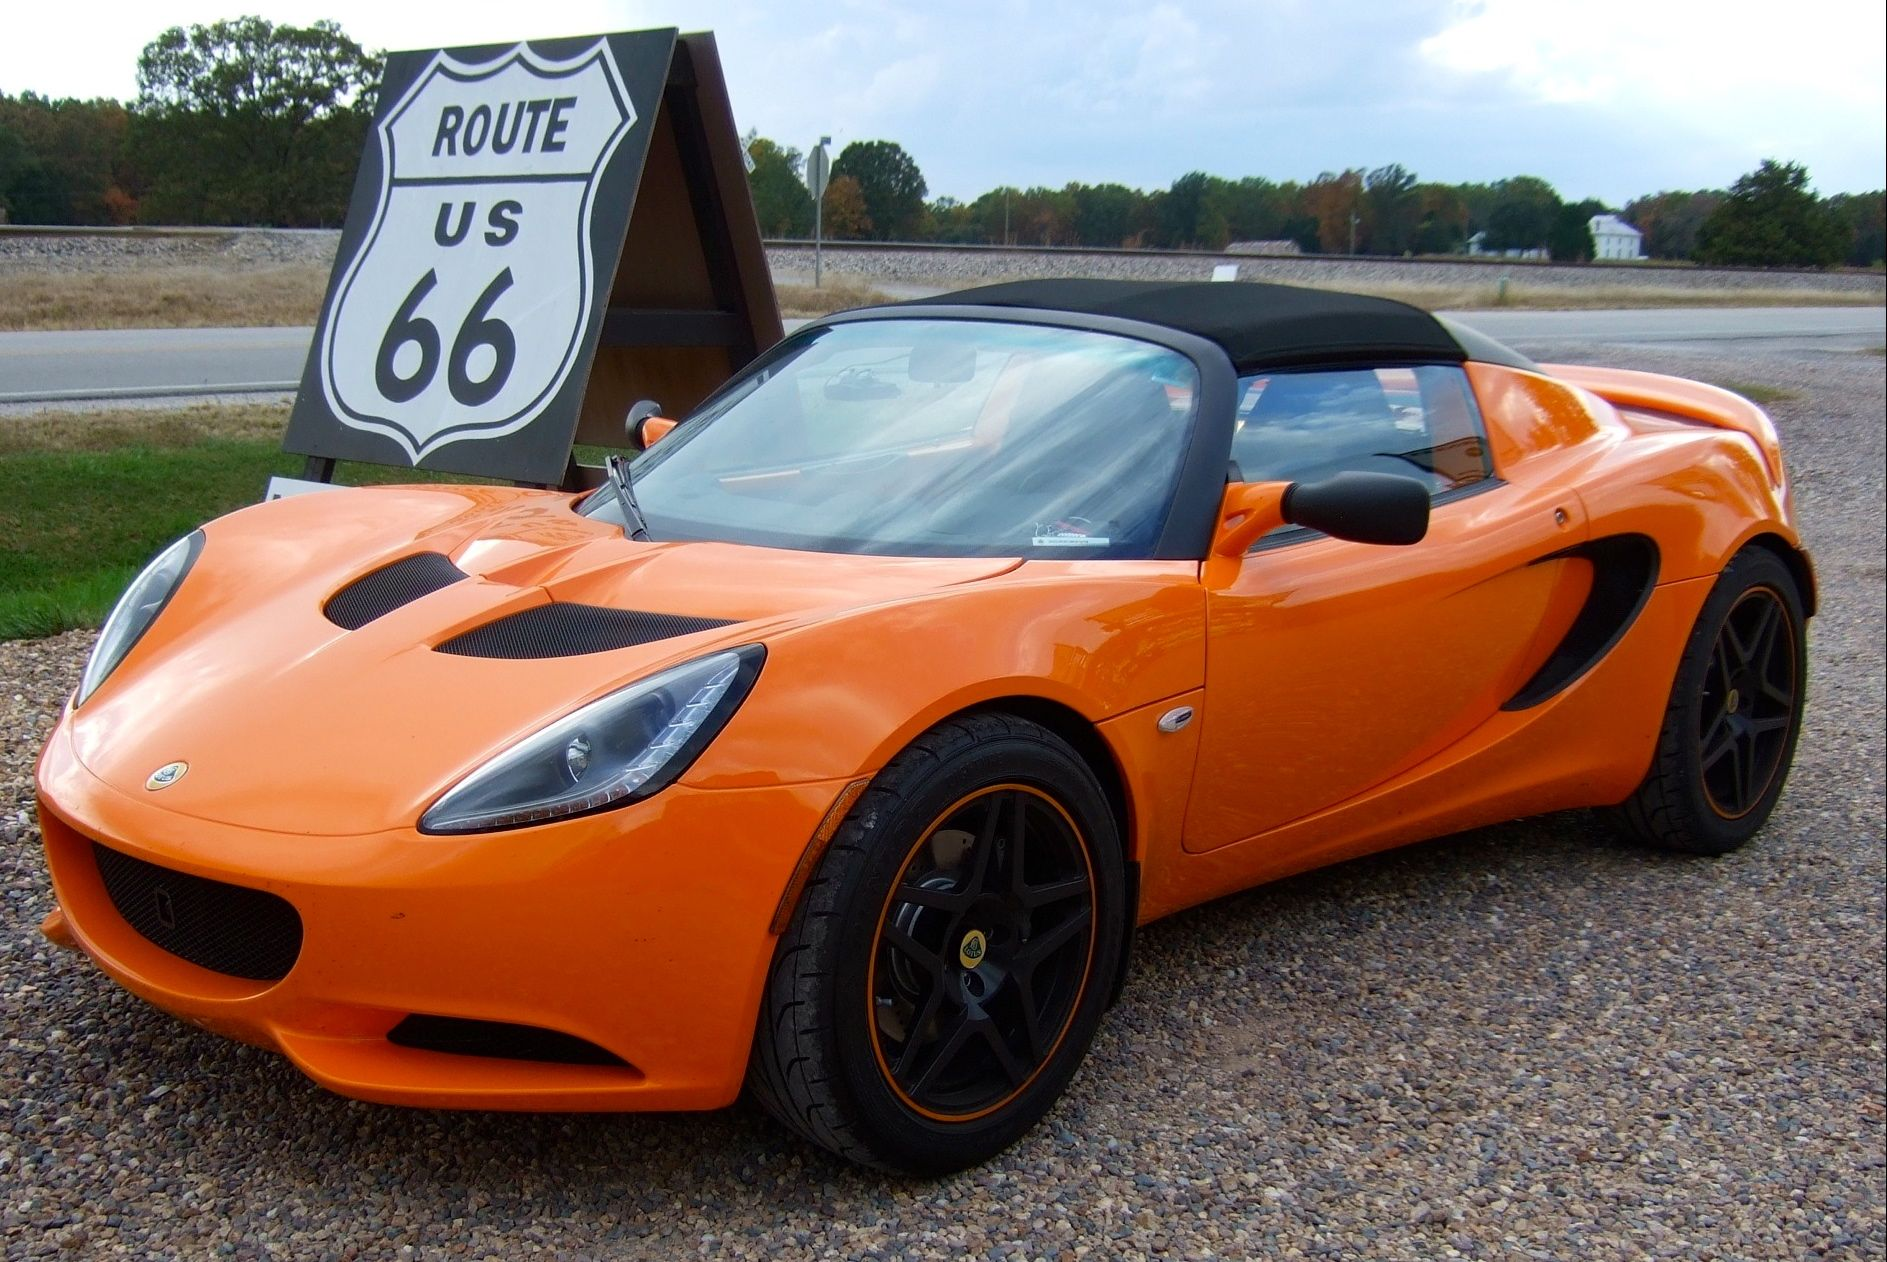 2011 Lotus Elise SC Final Edition Registry - Page 2 - LotusTalk ...